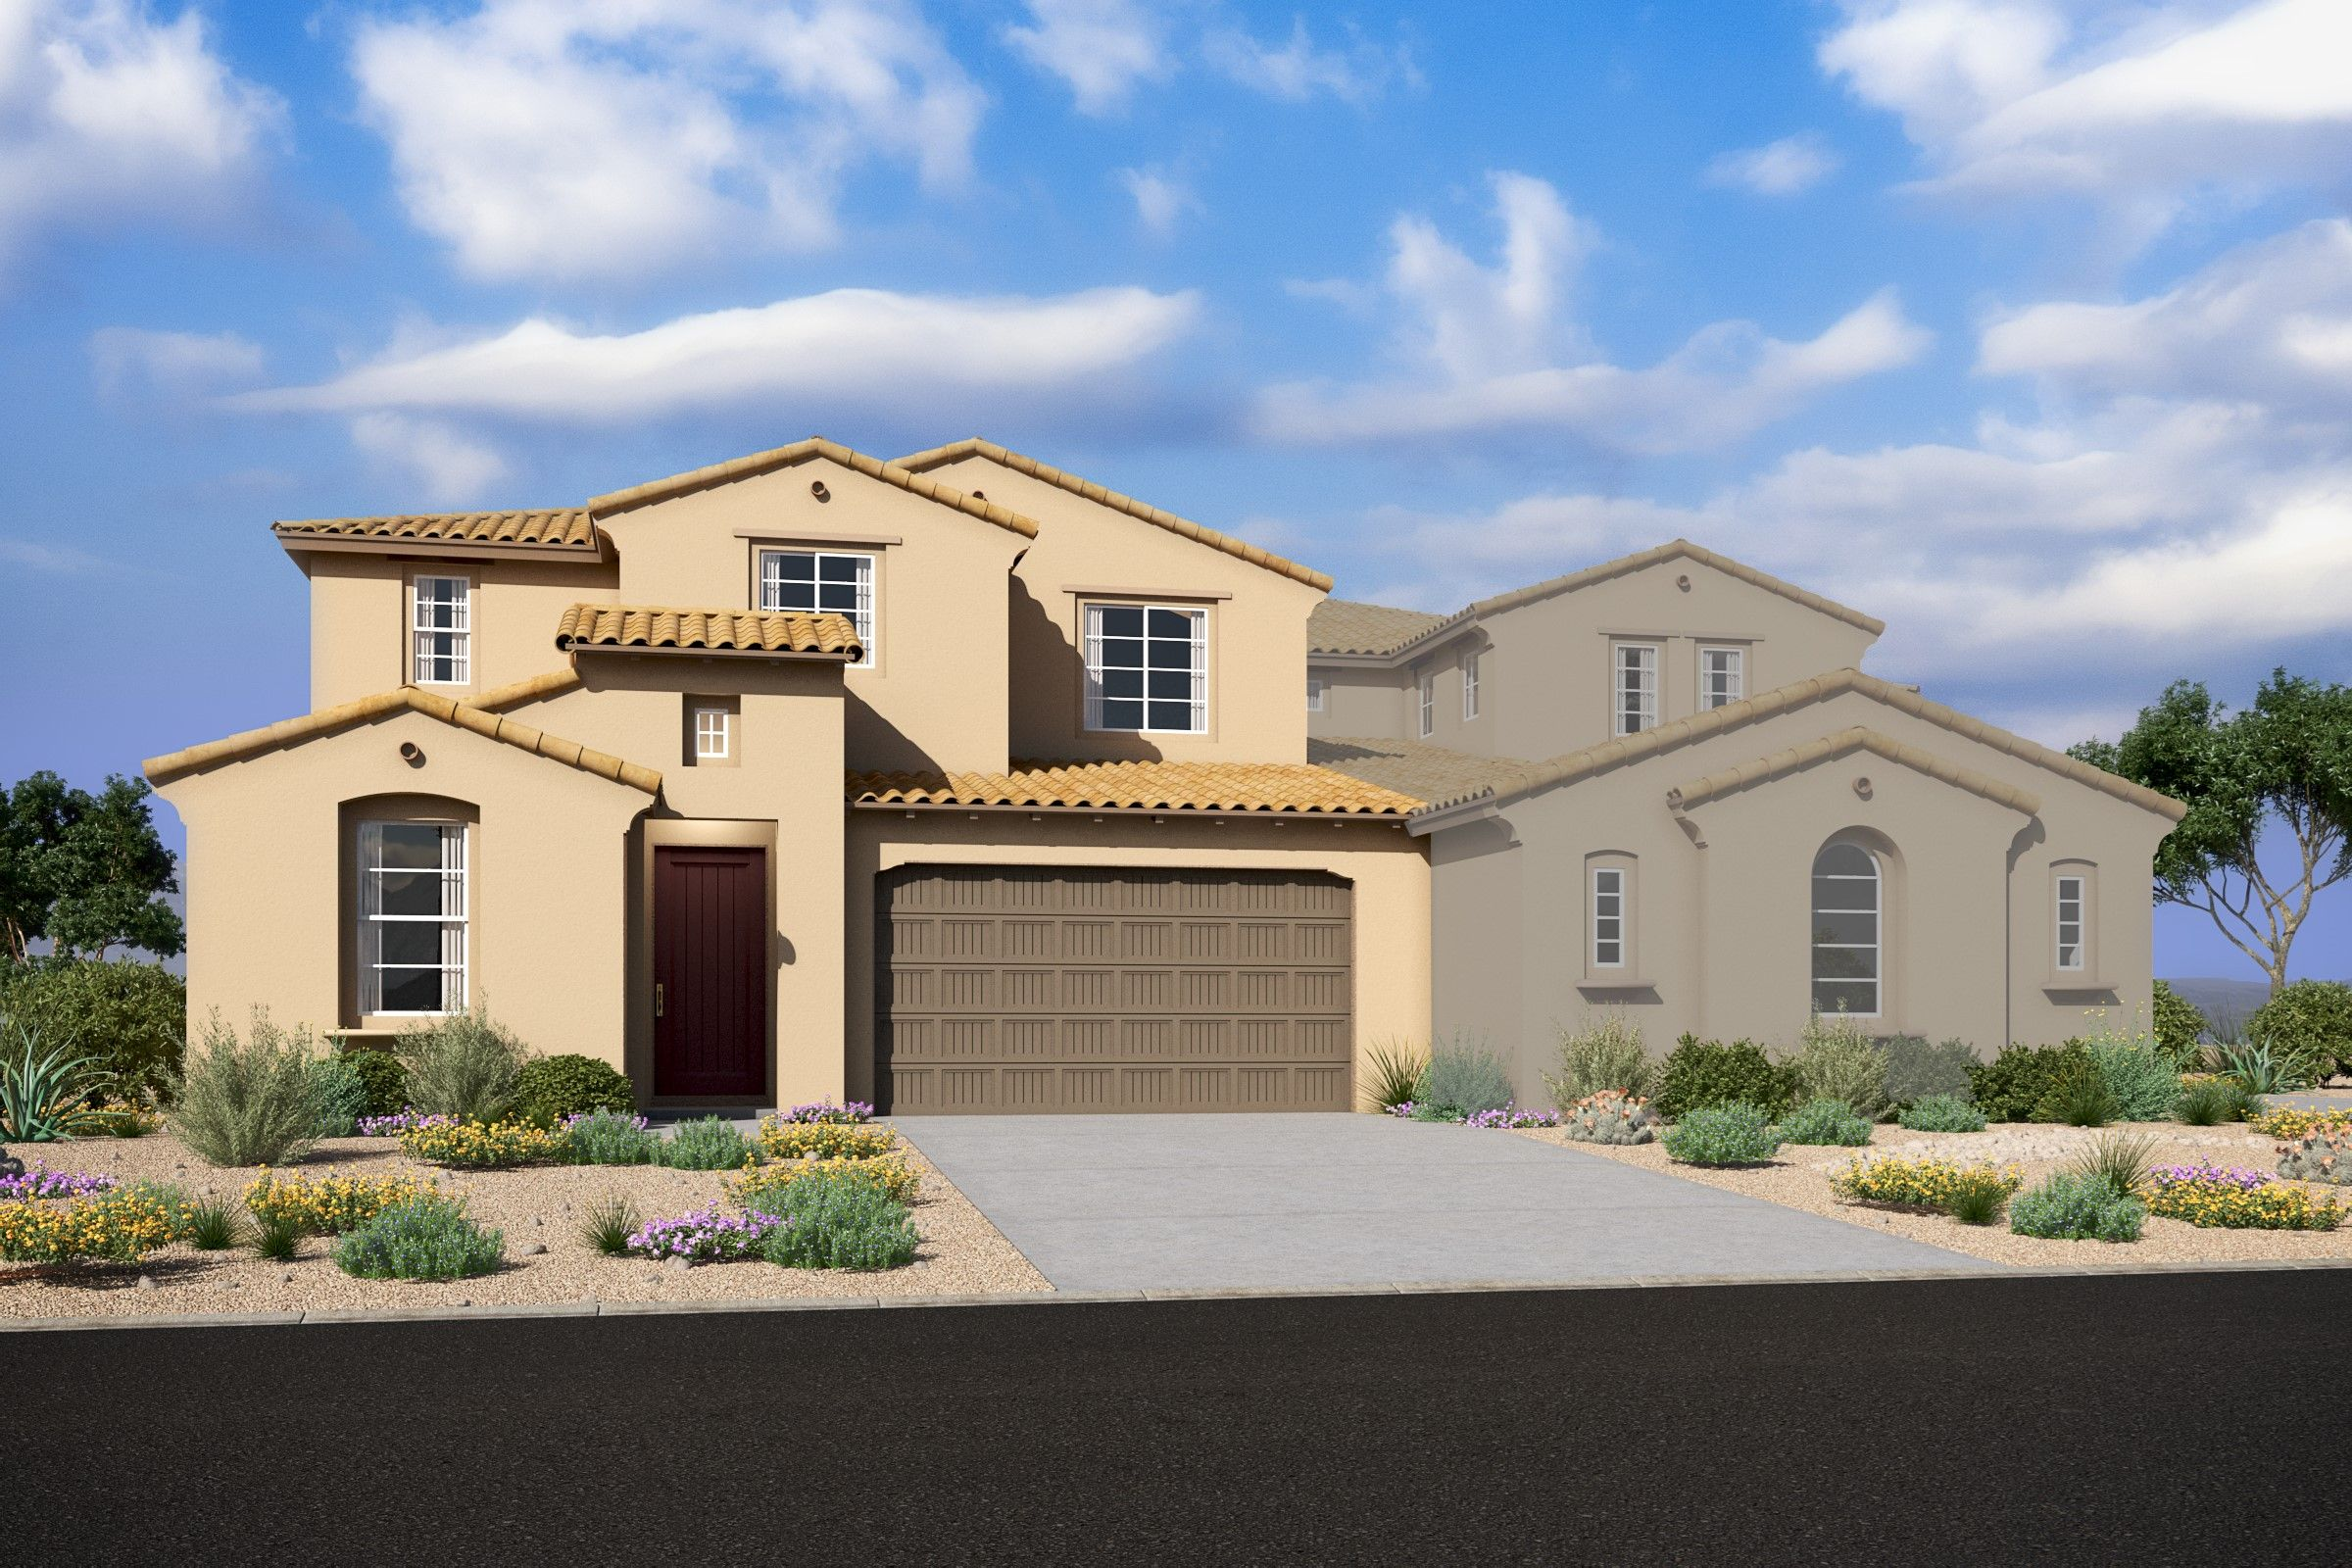 Multi Family for Sale at Summit At Silverstone - Meridian 74th St And Pinnacle Peak Rd Scottsdale, Arizona 85255 United States